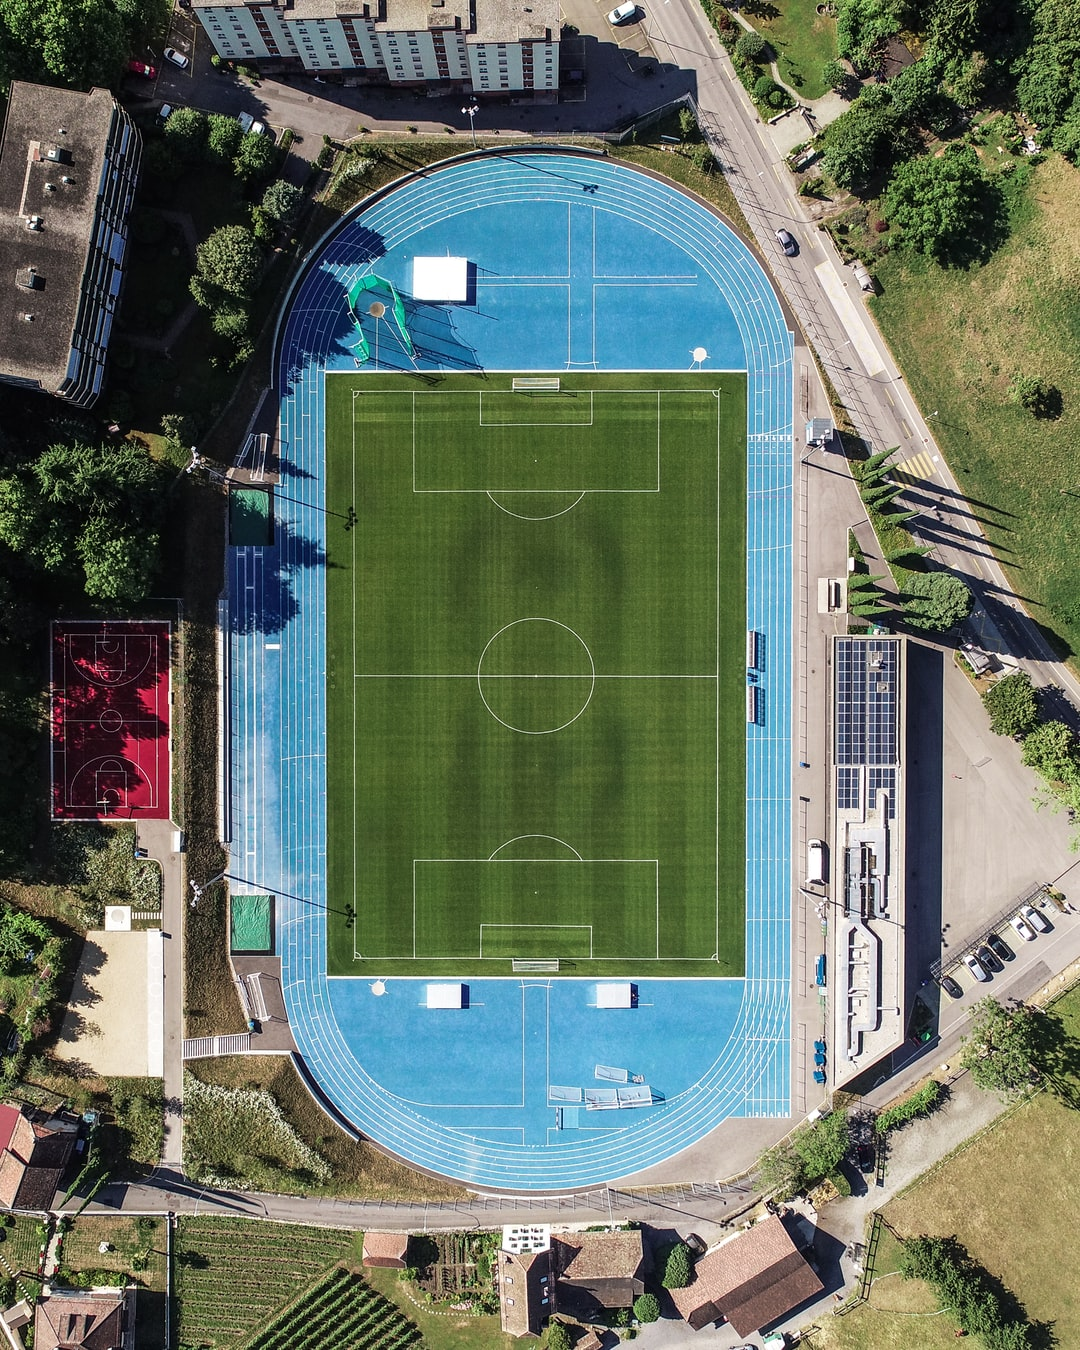 Montreux Football Pitch